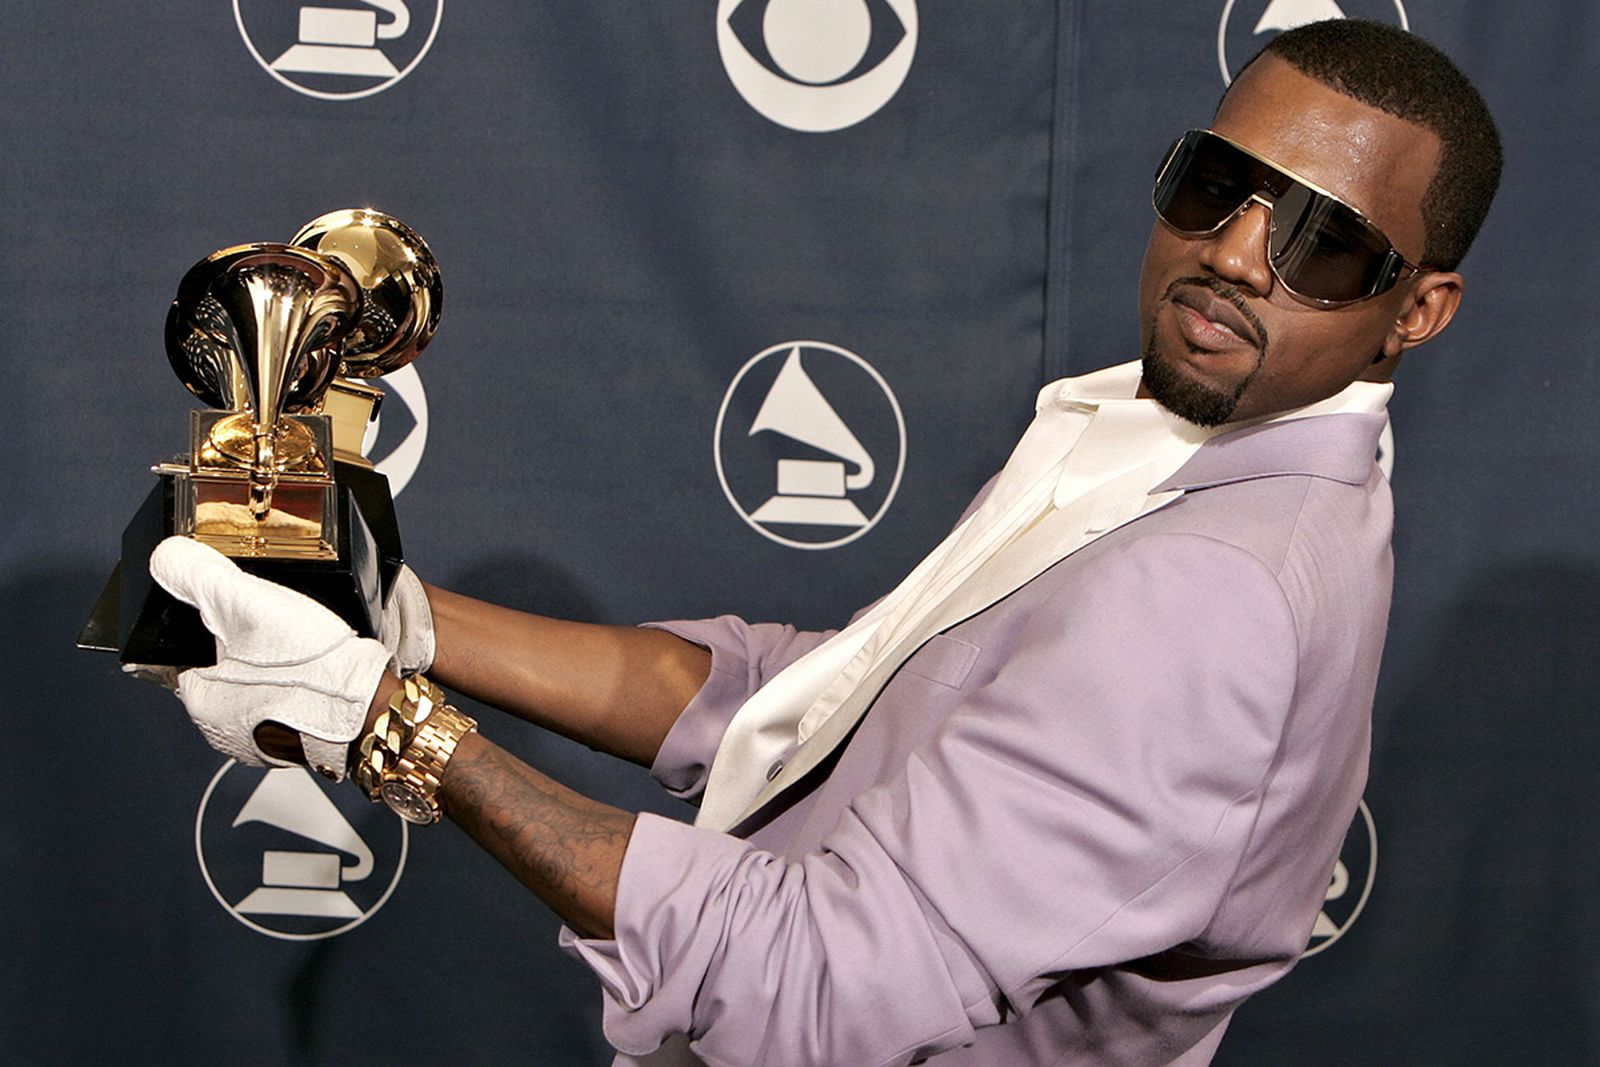 Kanye West with his awards at the 2006 Grammys